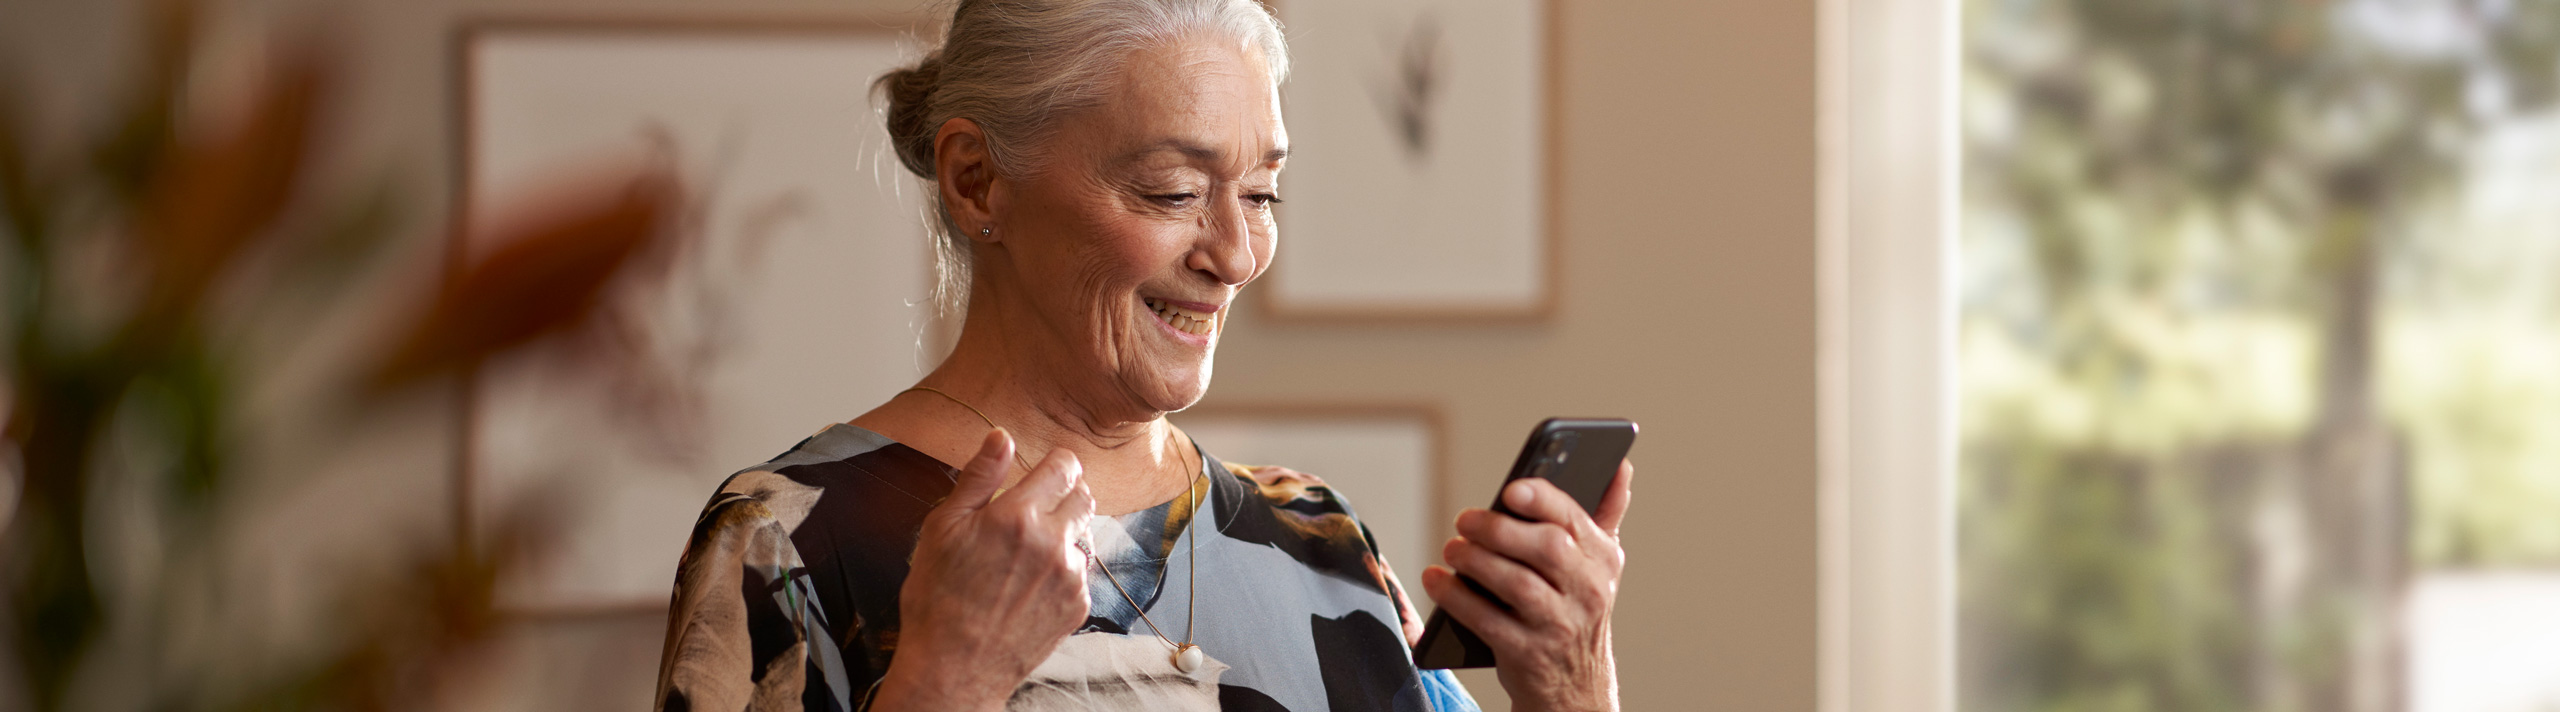 New innovative at-home access to hearing aids and care